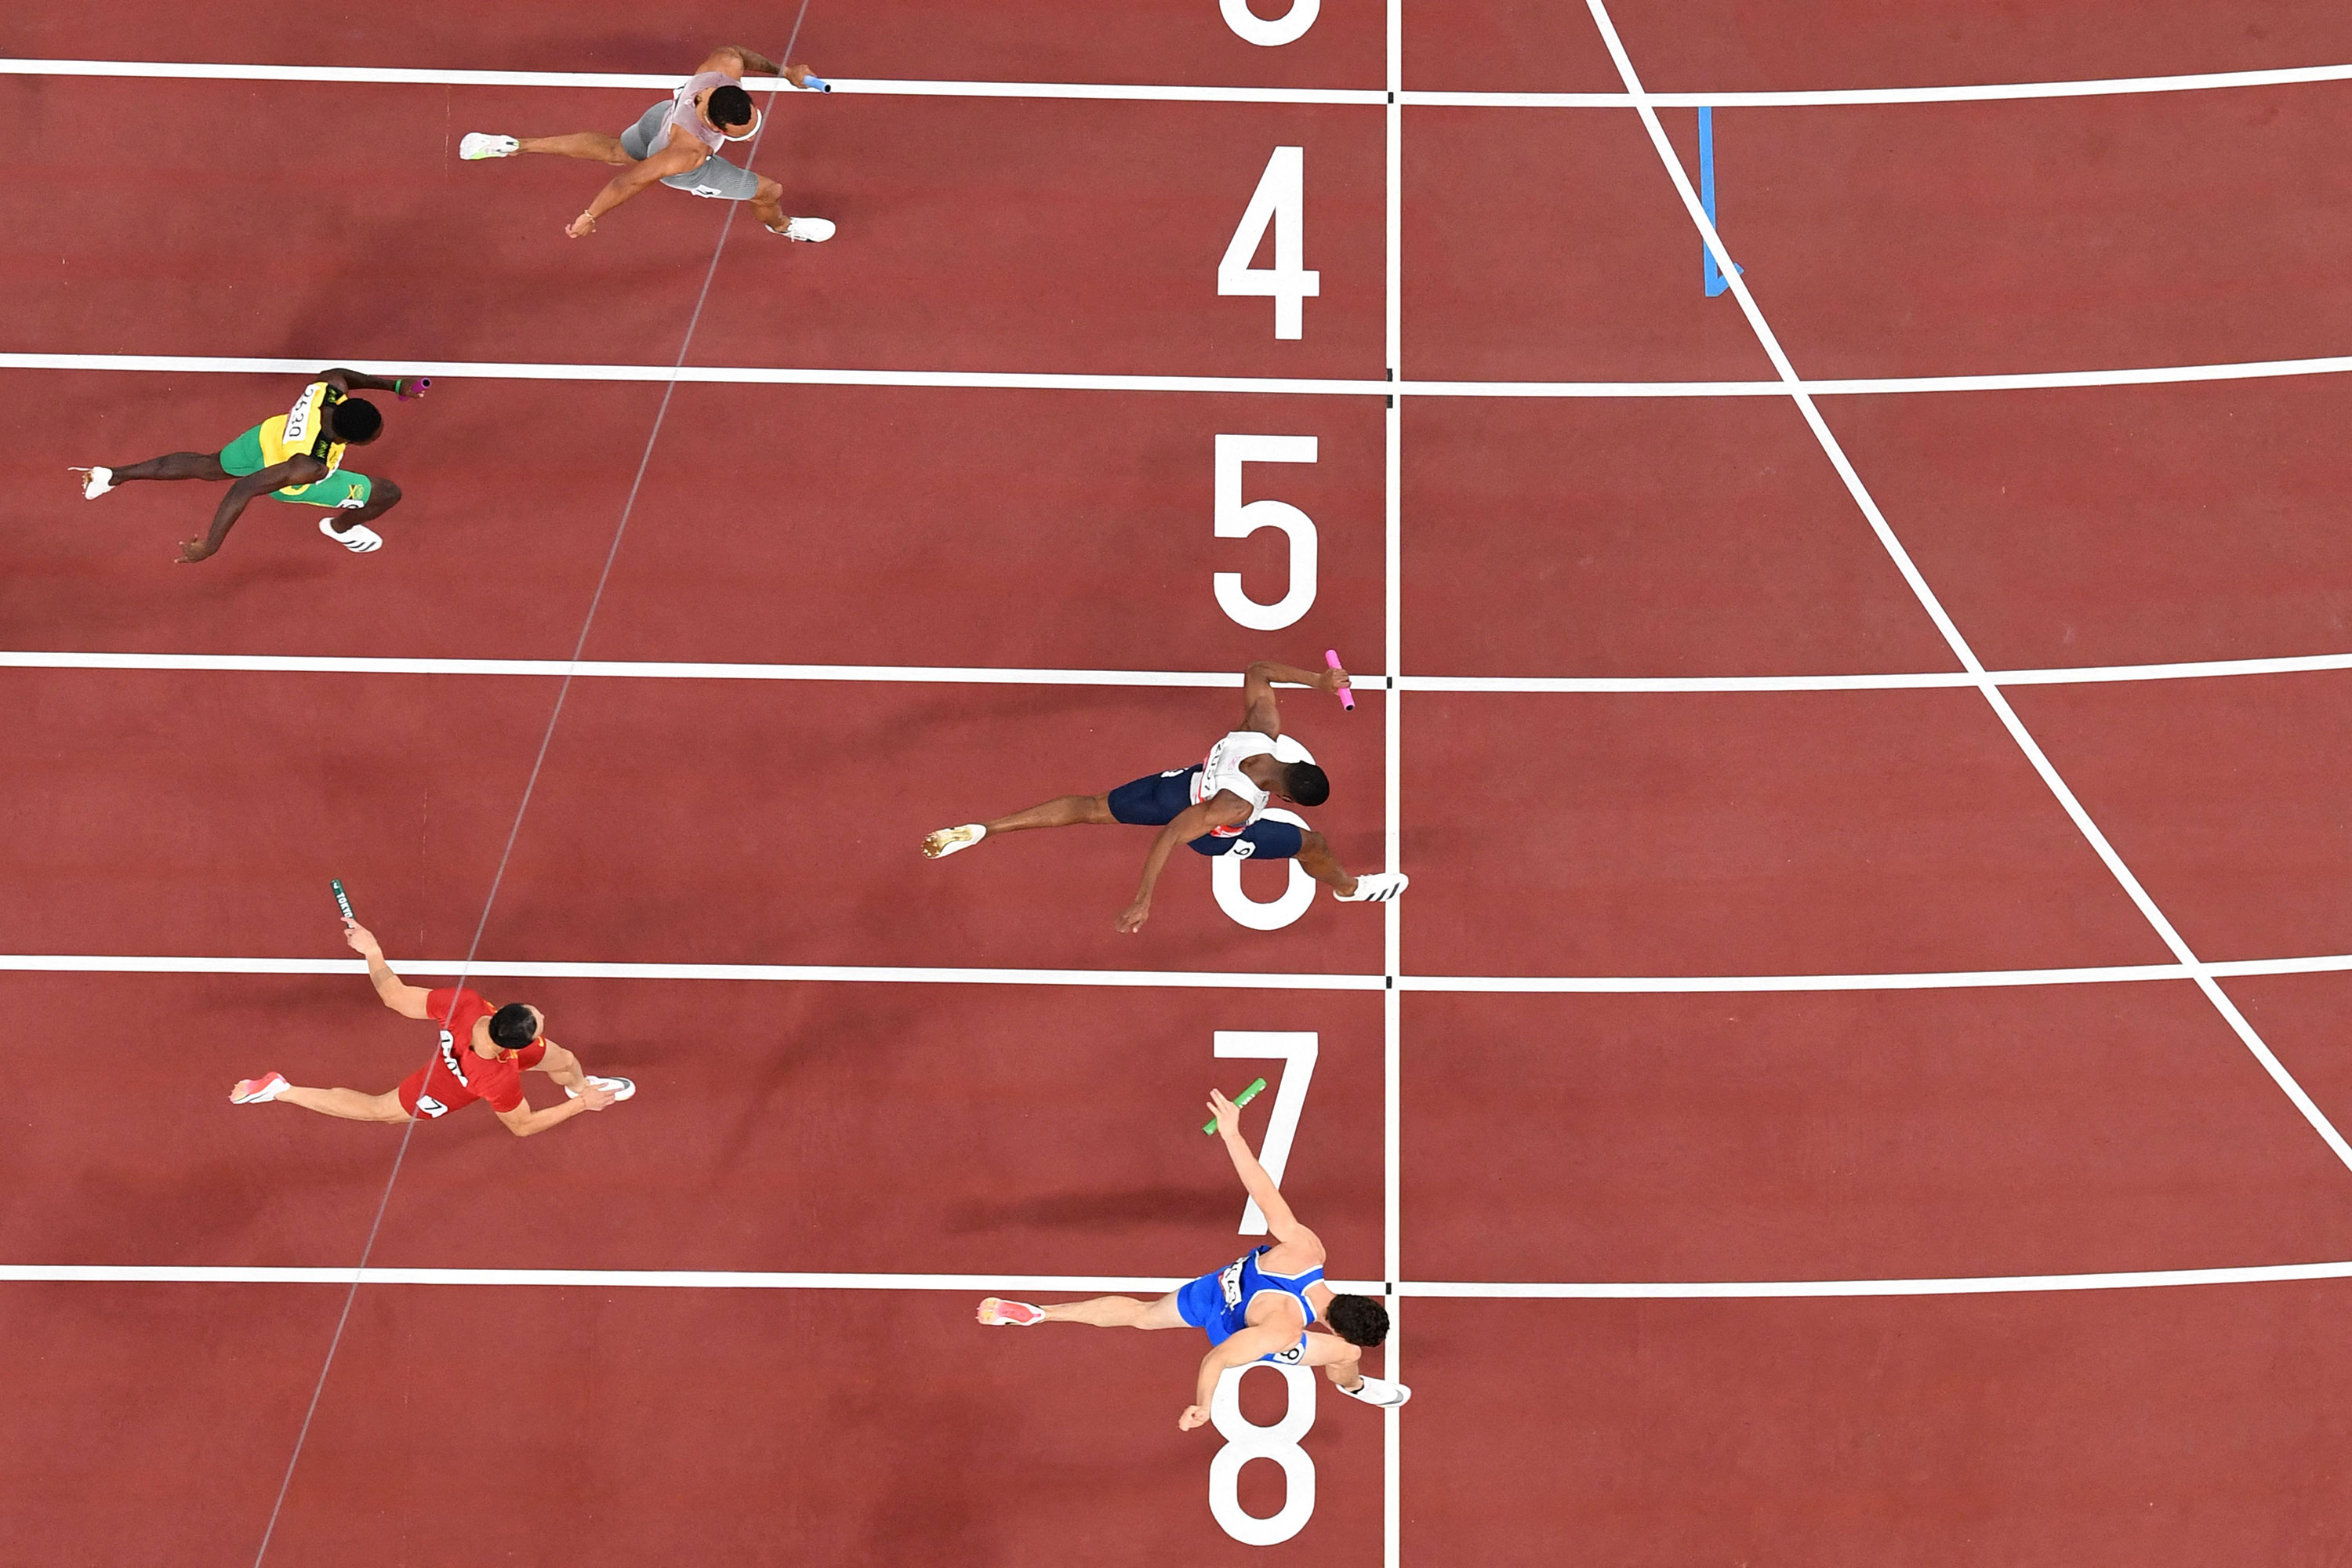 Italy's Filippo Tortu, bottom, finishes first in the 4x100 meter relay final on Friday.